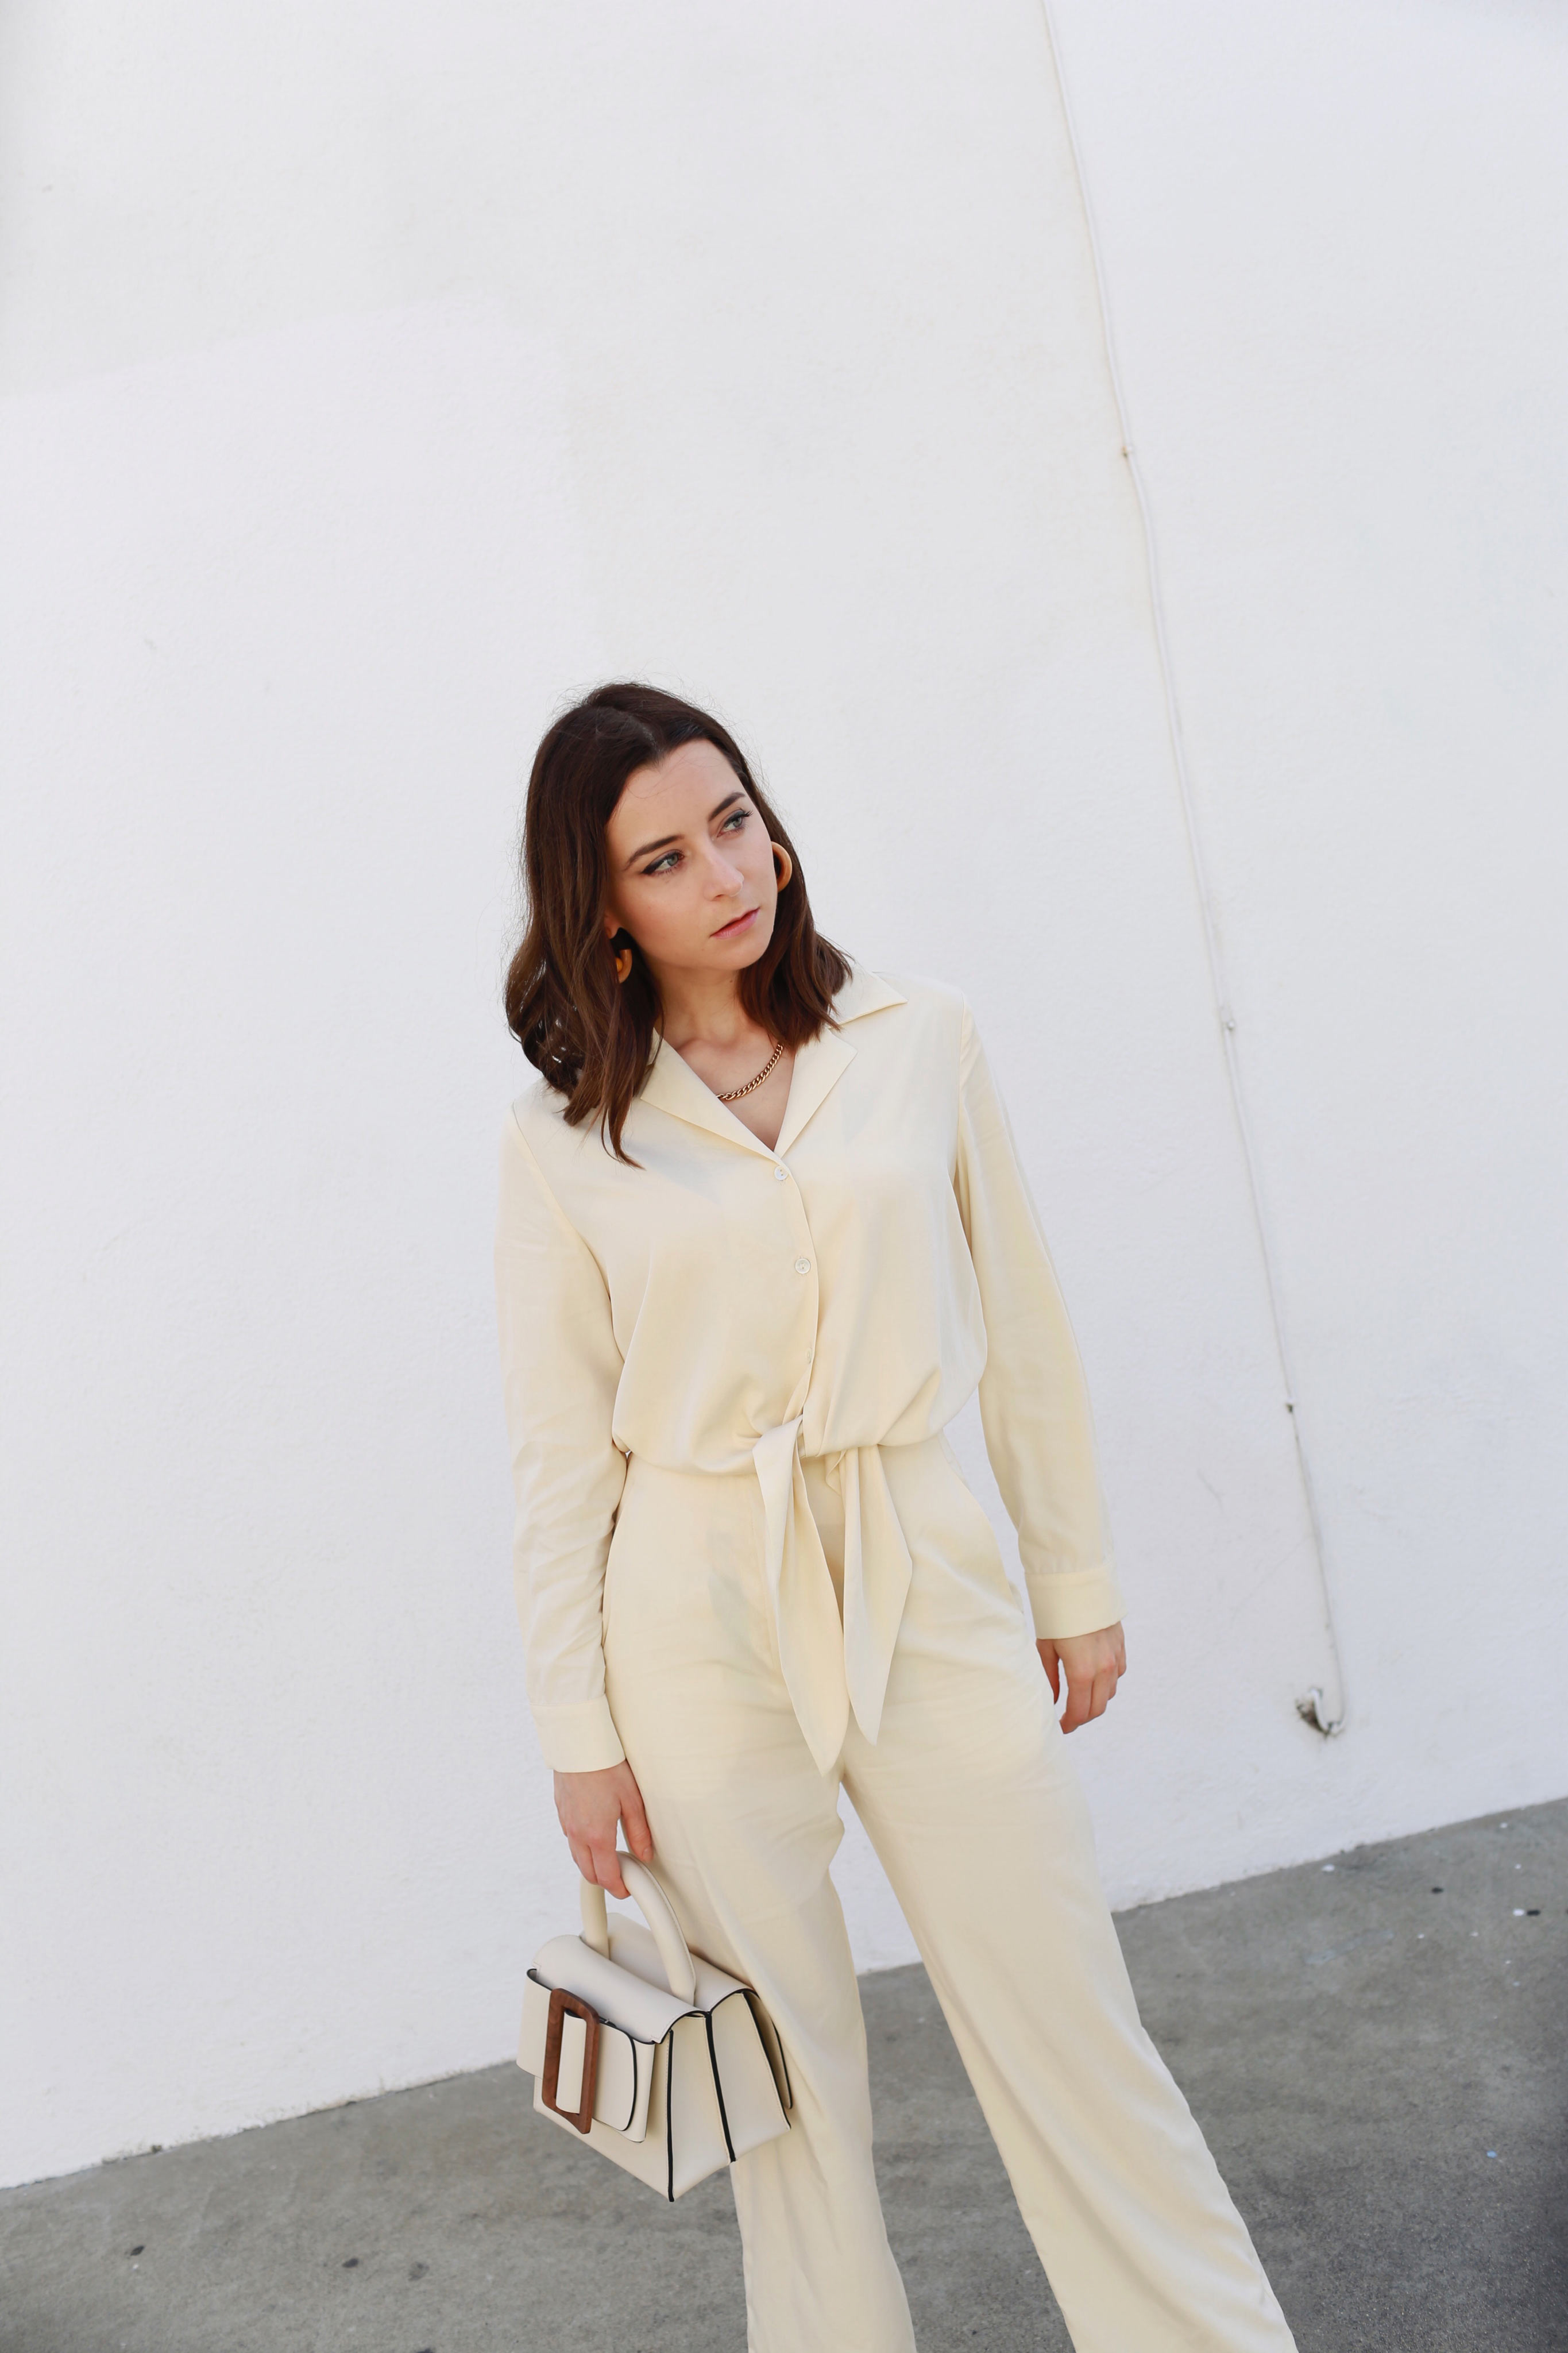 How to wear the white suit for women. White party outfit ideas and summer outfit ideas are on Modersvp.com. White suit from Ba&Sh Paris worn by Julia Comil vanilla jumpsuit via Nanushka